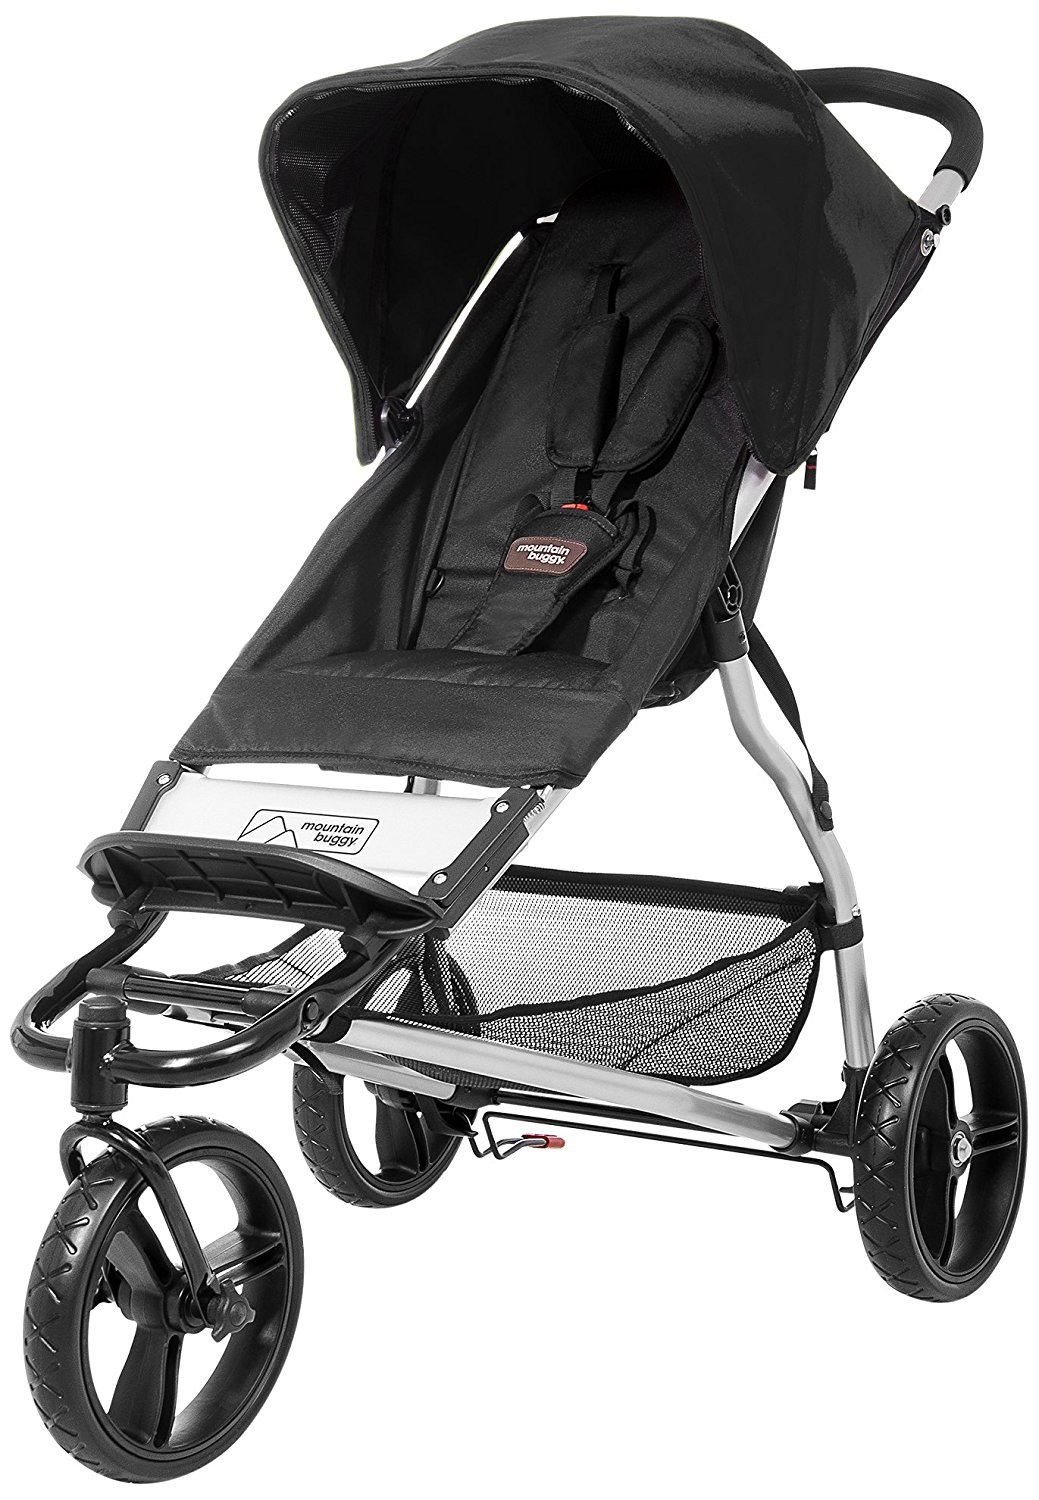 Mutsy Buggy Board Mountain Buggy Mini Stroller Review